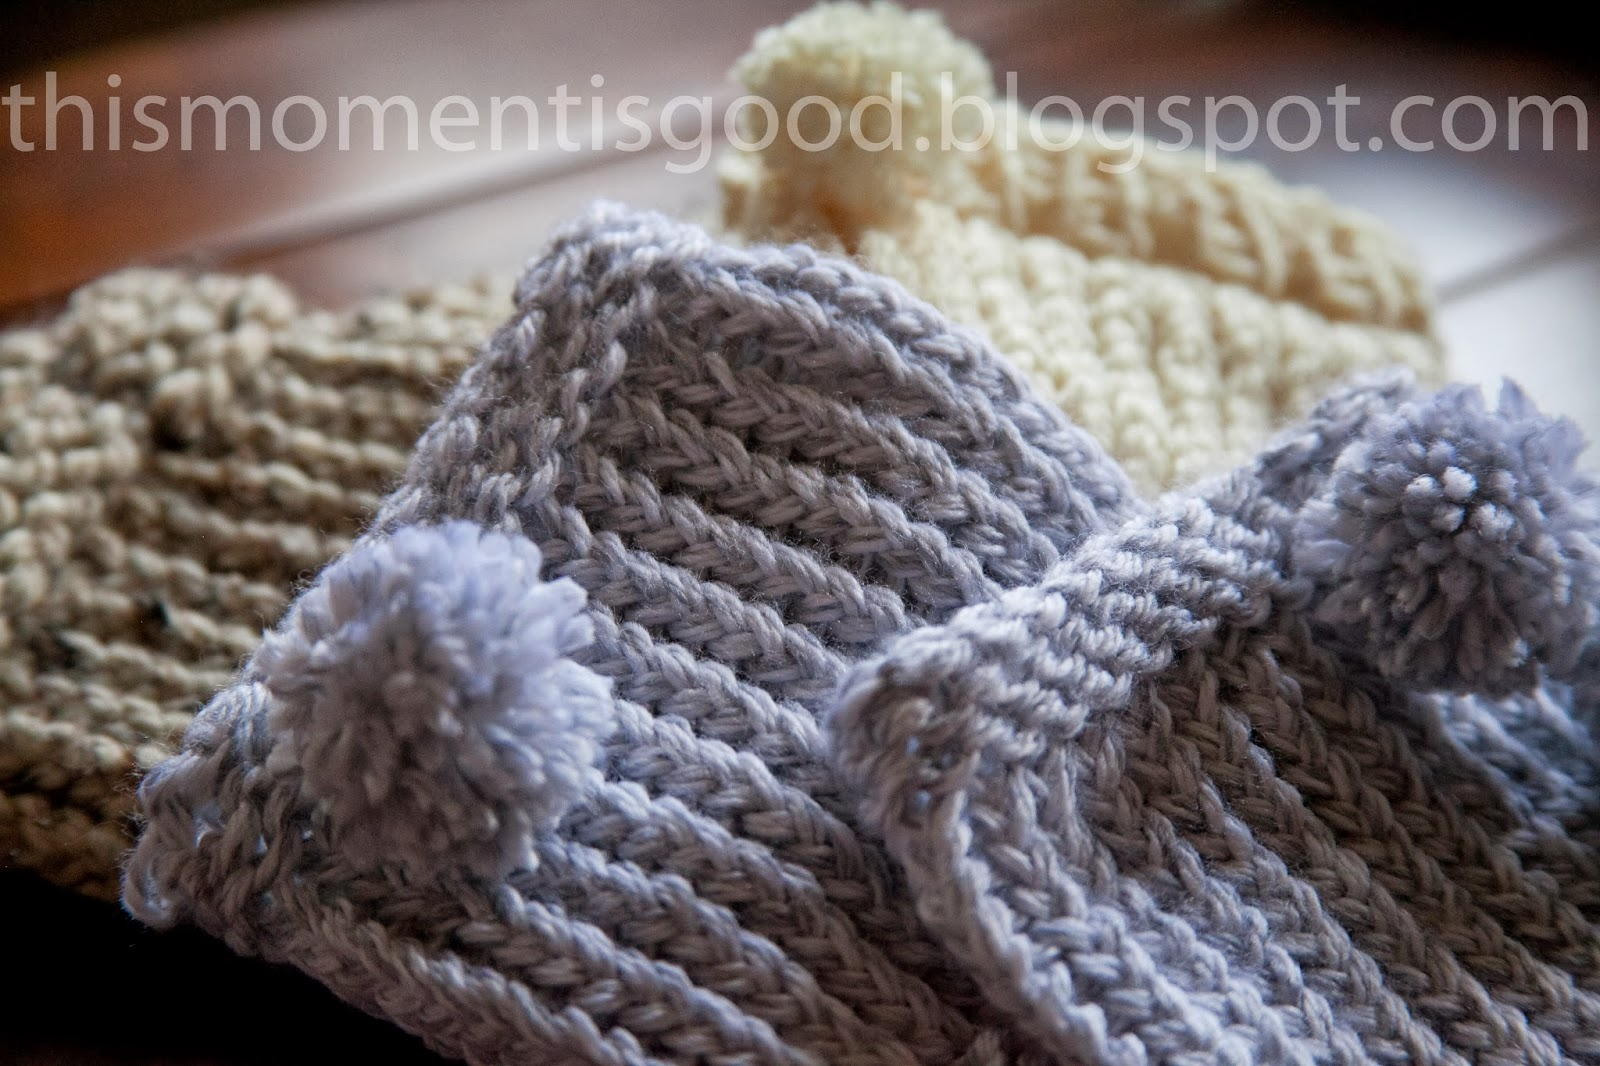 LOOM KNITTING: BOOT CUFFS | Loom Knitting by This Moment is Good!